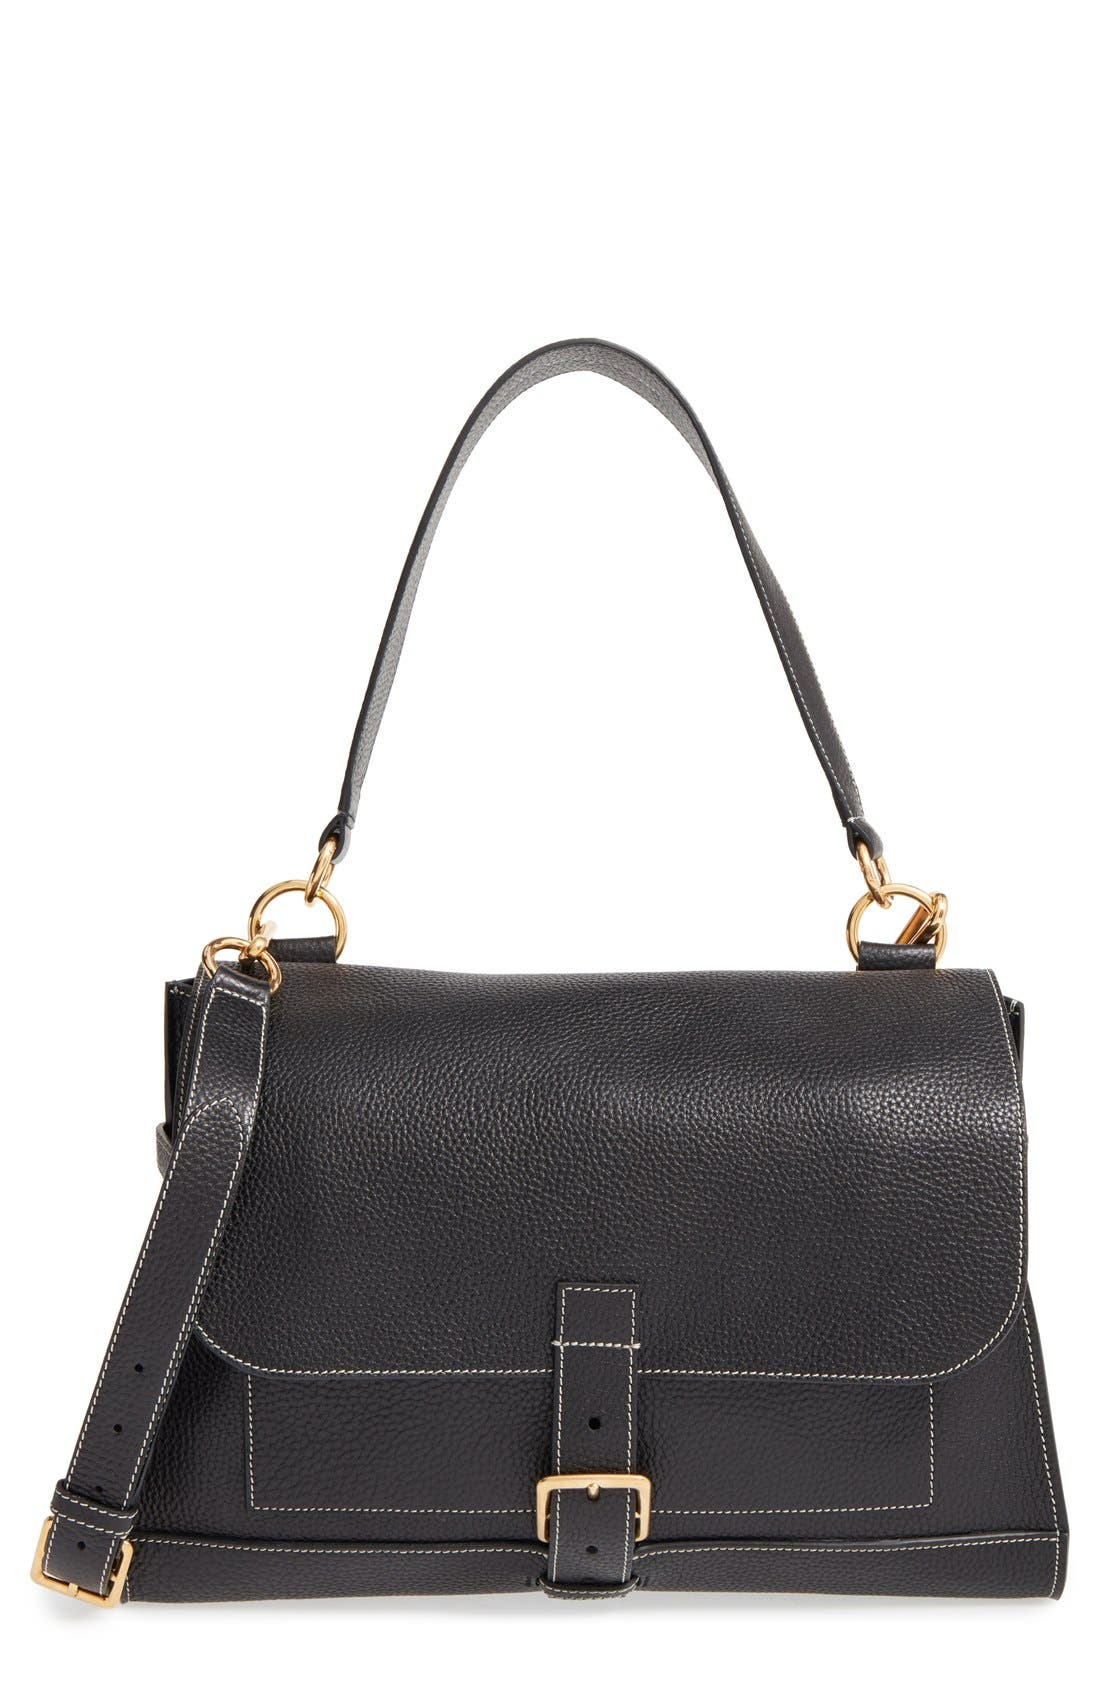 'Small Buckle' Leather Shoulder Bag,                         Main,                         color, 001